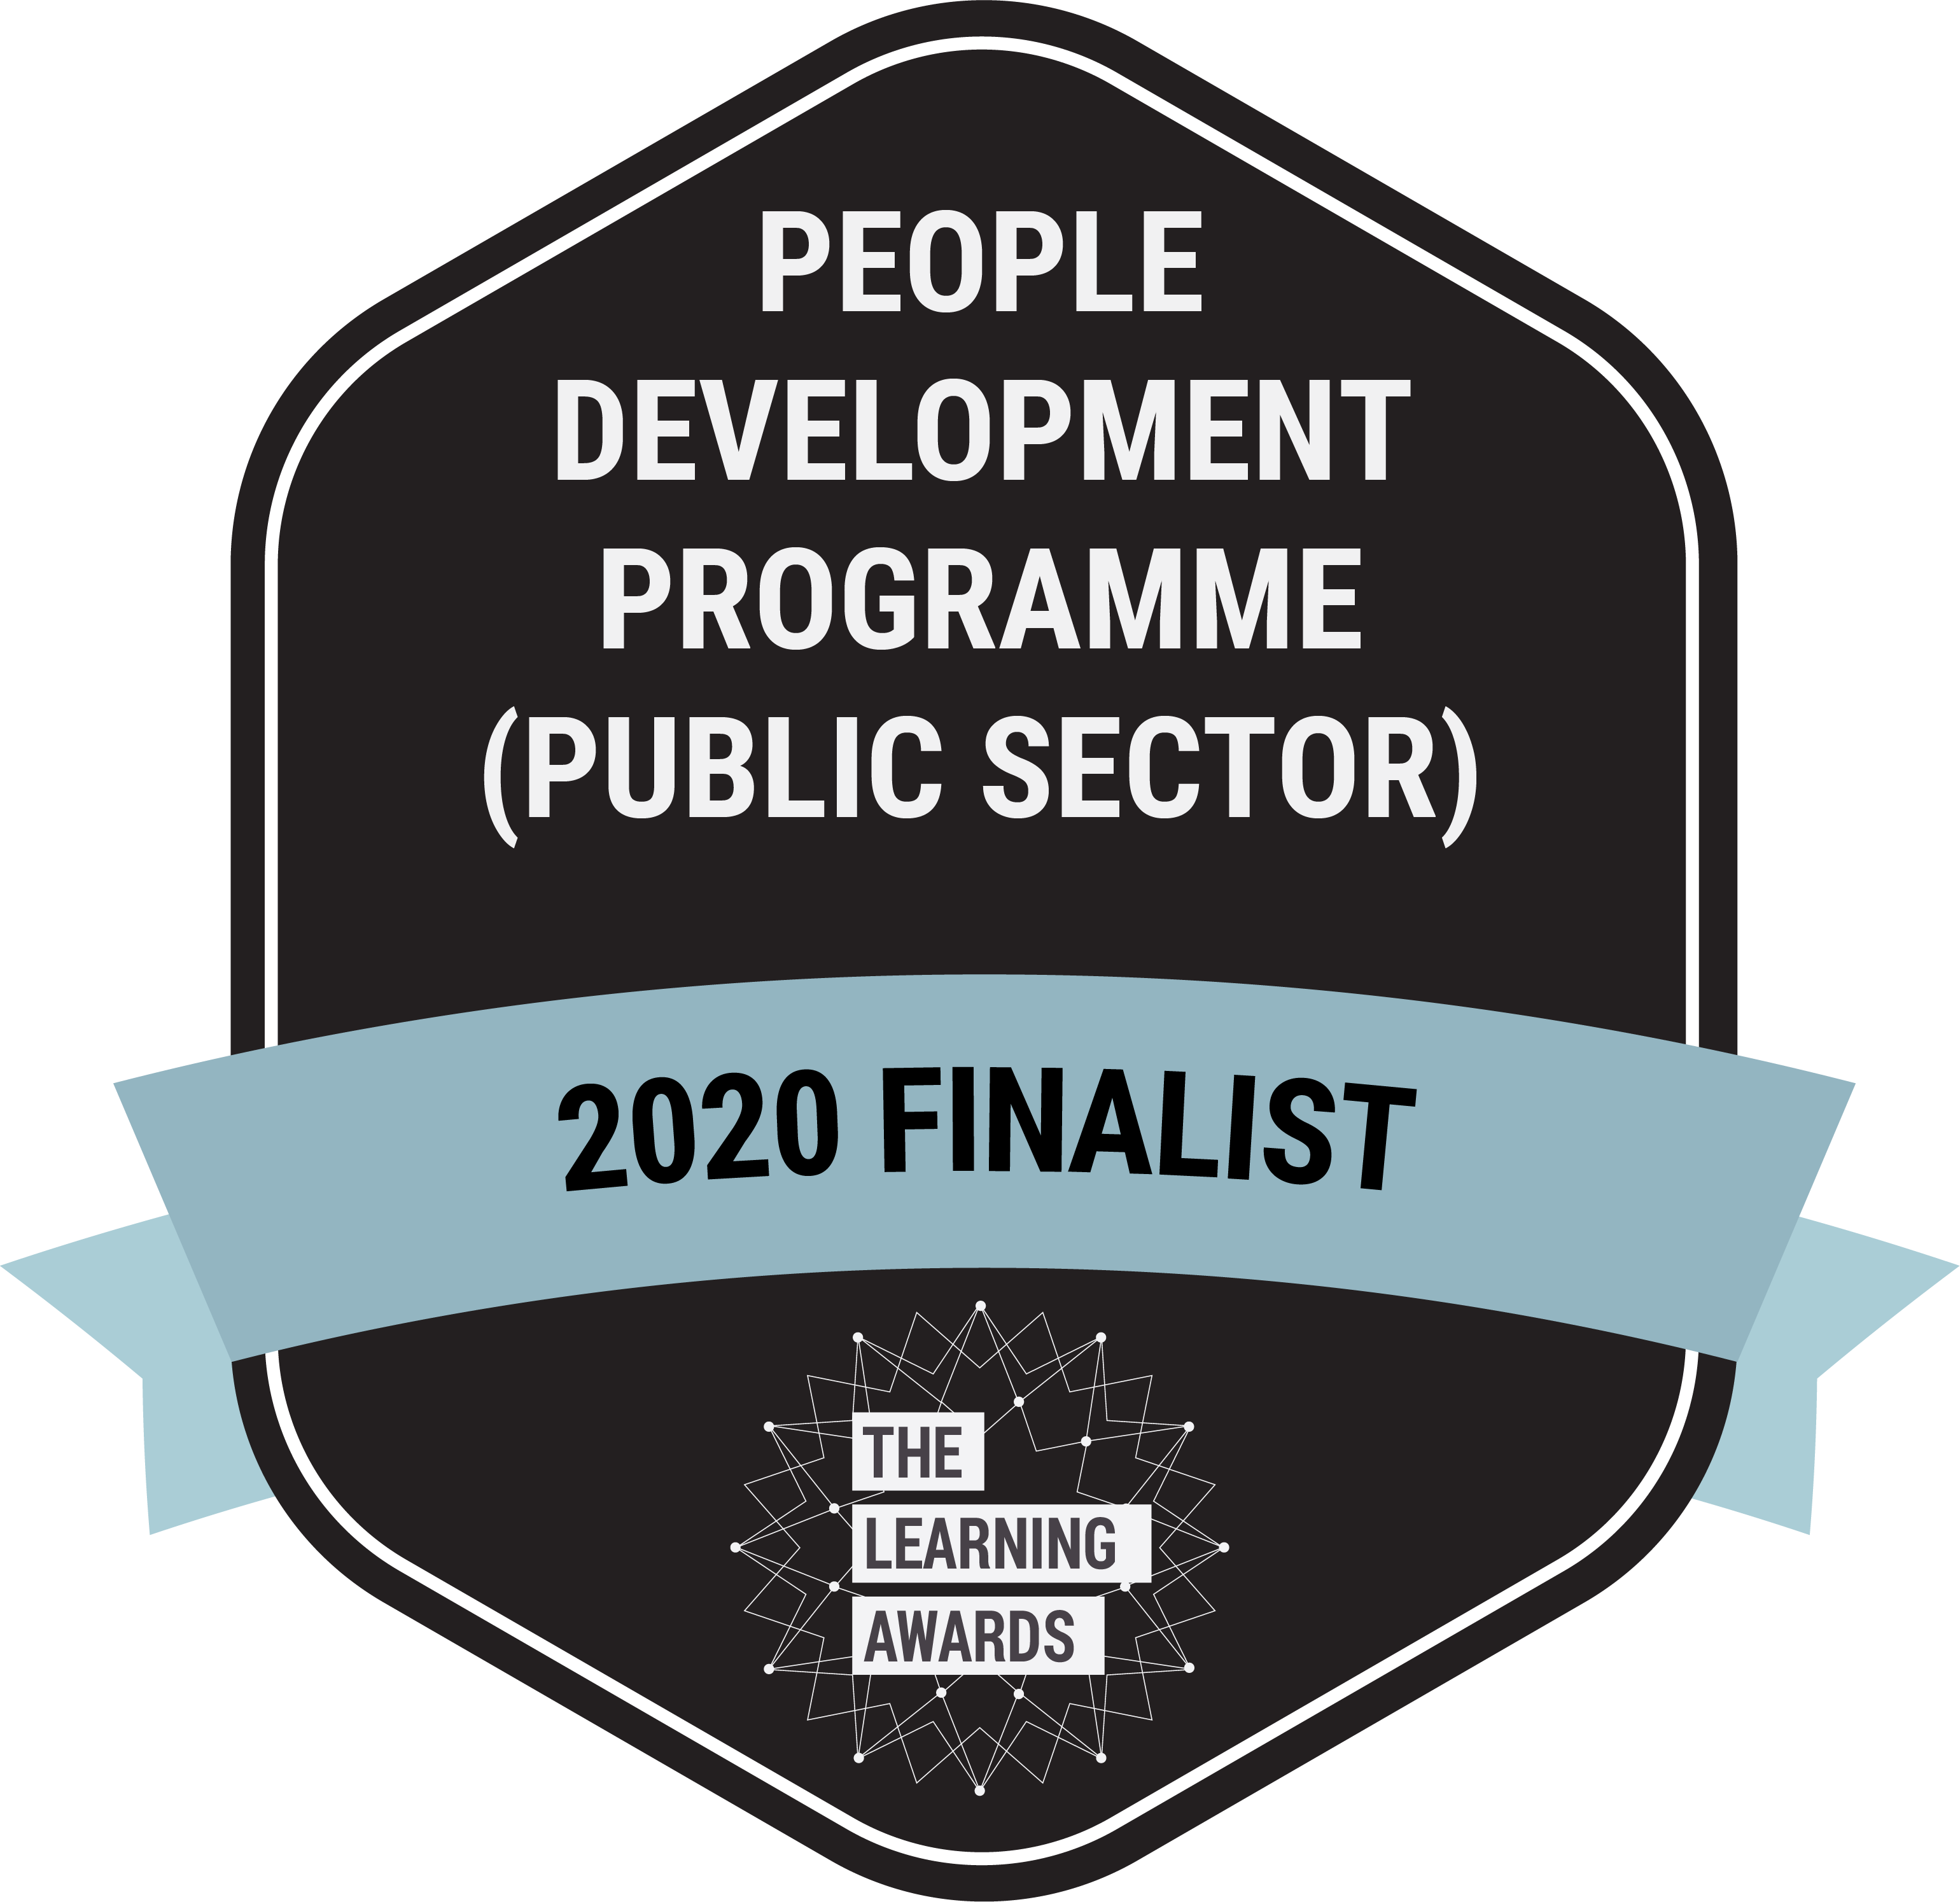 The Learning Awards Finalists 2020